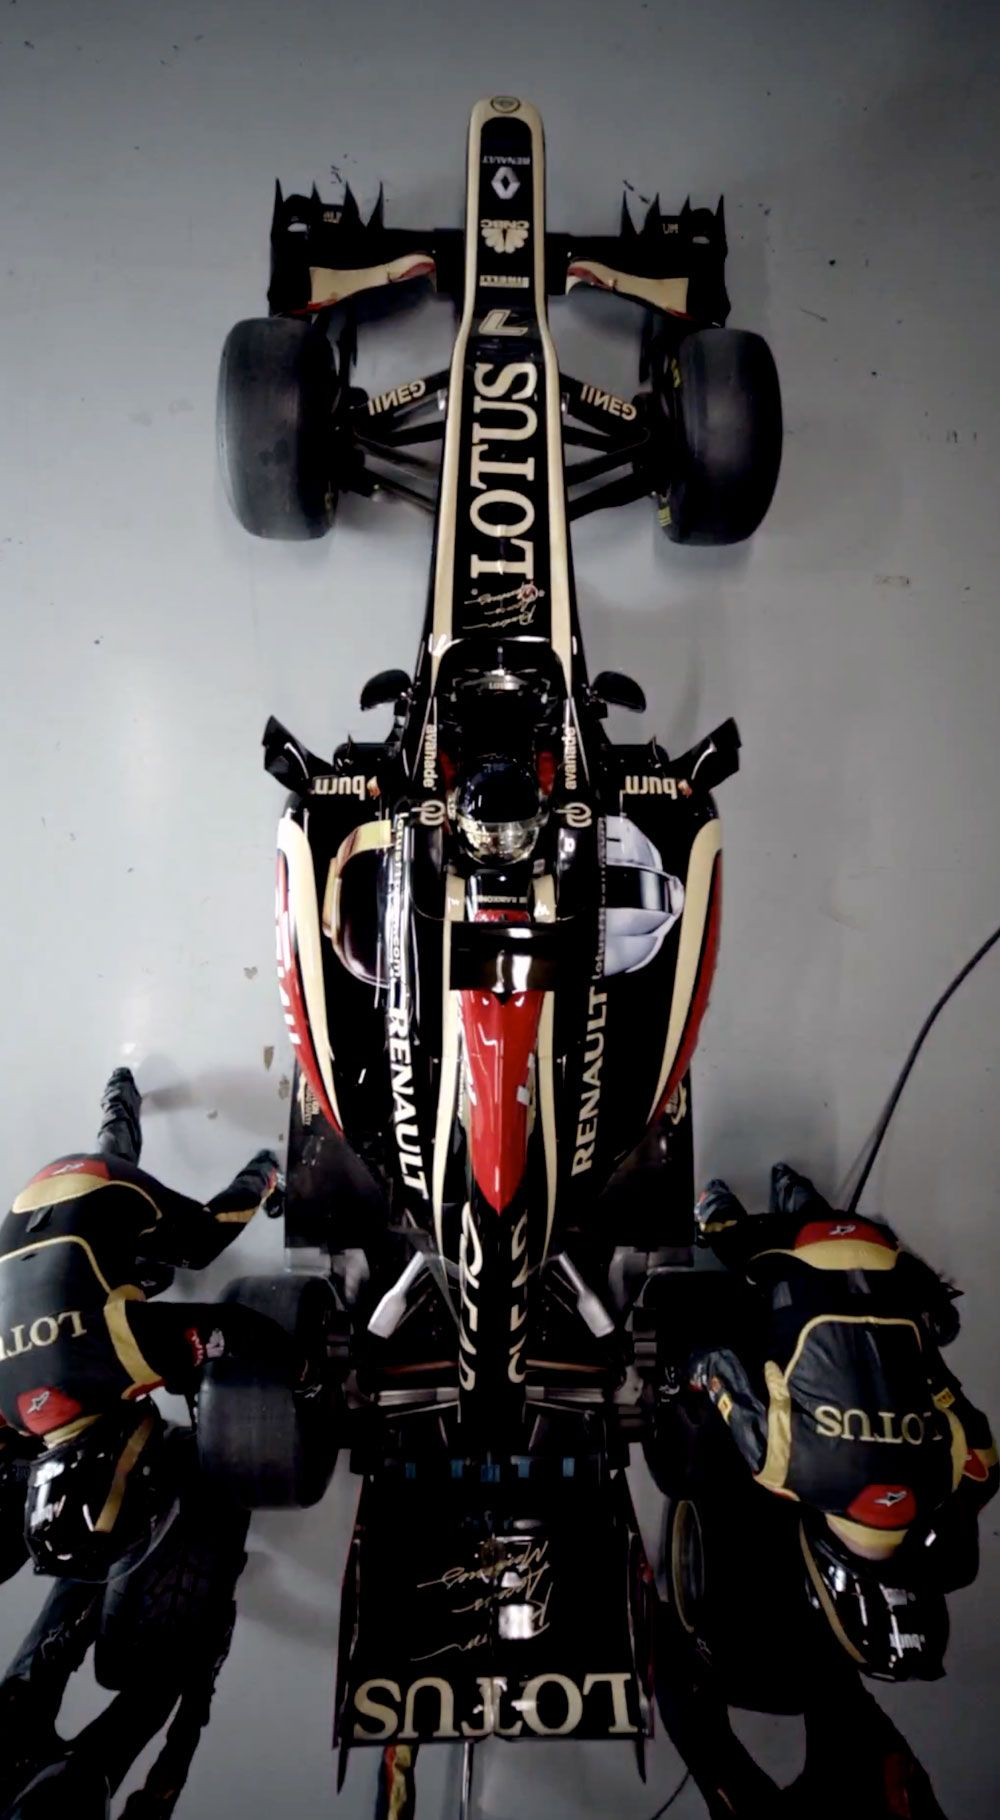 Daft Punk Race For Lotus F1 Team In A Promo Vid By Jonas Akerlund Black Dog Films Enjoy The Ride Formula Racing Indy Cars Lotus F1